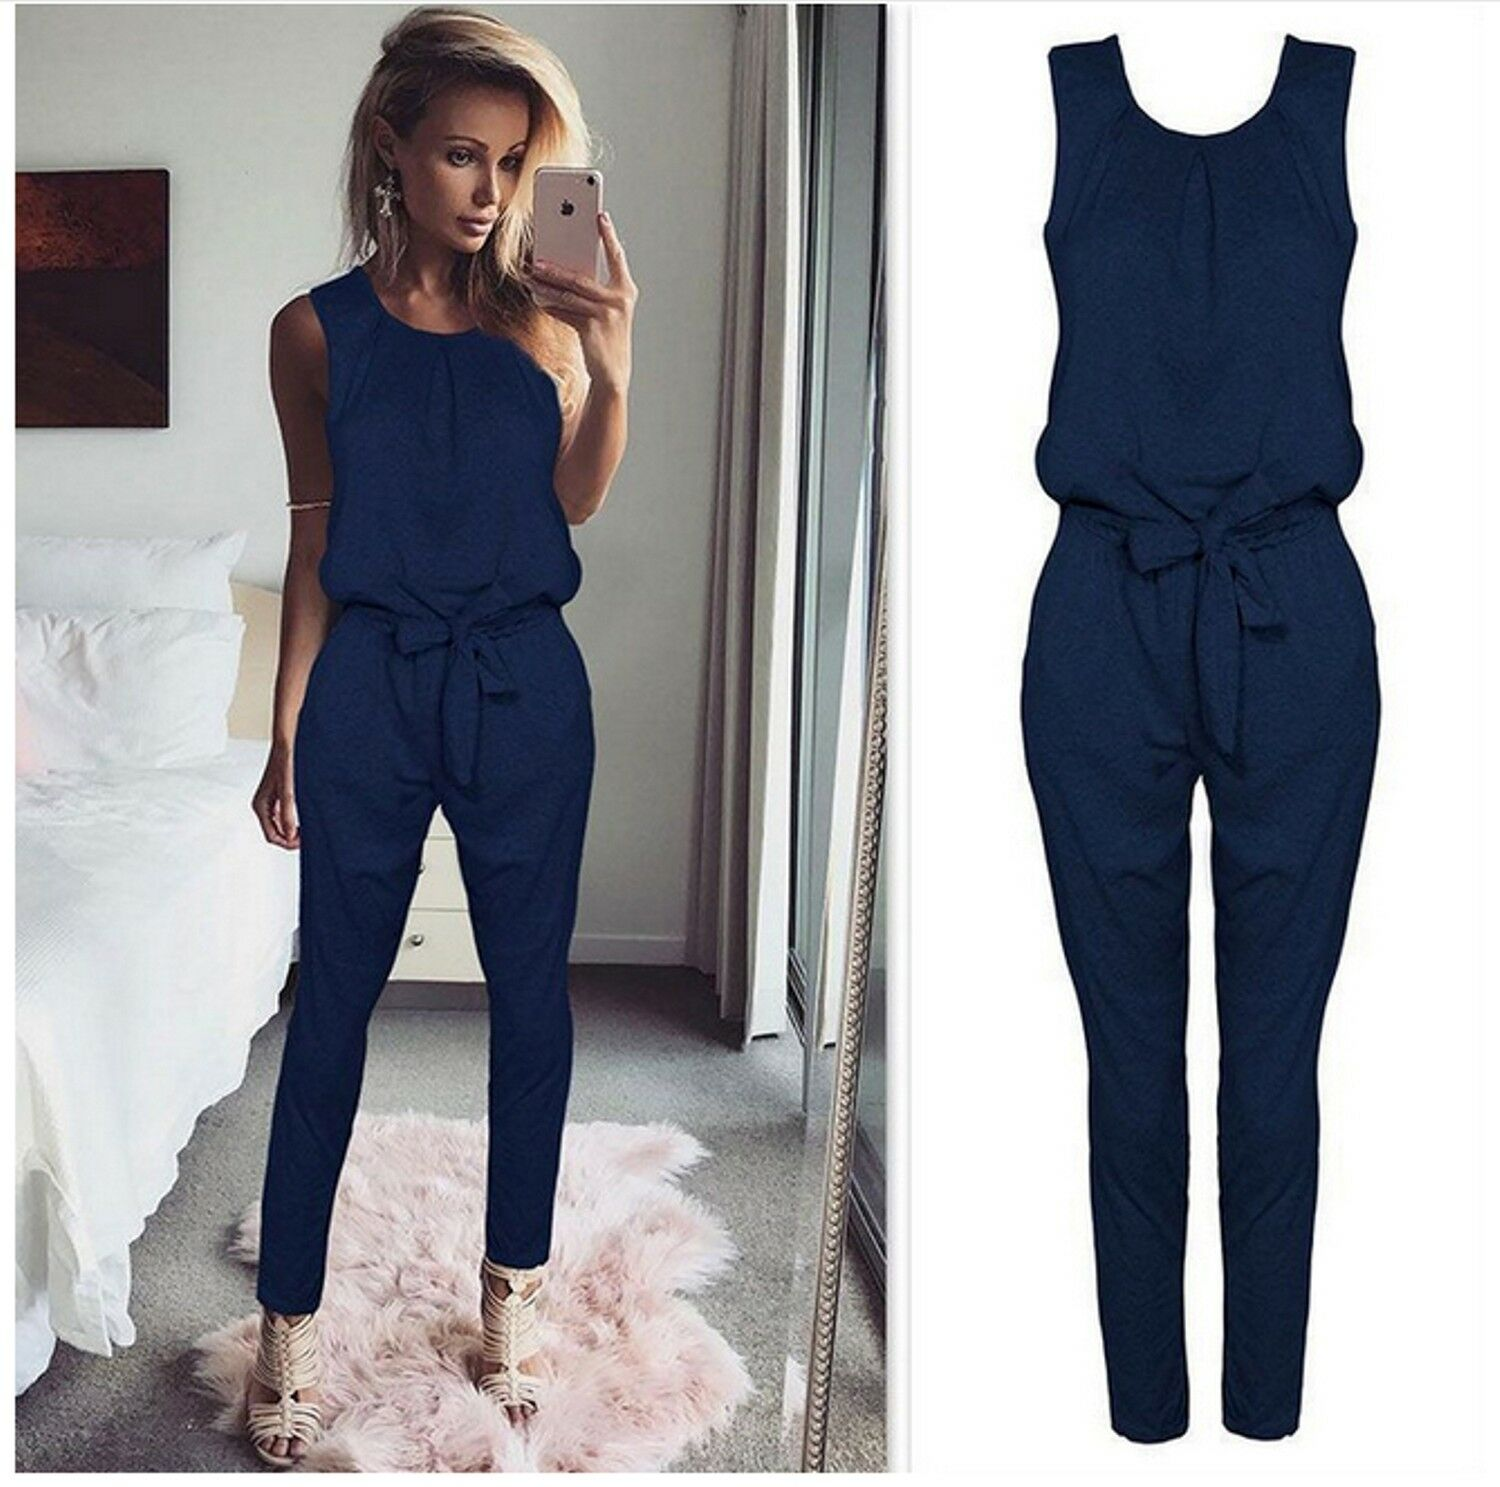 5cc9d9cea14f UK Womens Bandage Evening Party Playsuit Ladies Romper Long Jumpsuit Size 6  -16. ❤ BRAND NEW STYLE ❤ FAST DELIVERY ❤ SIZE 8 - 14 ❤ 2018❤